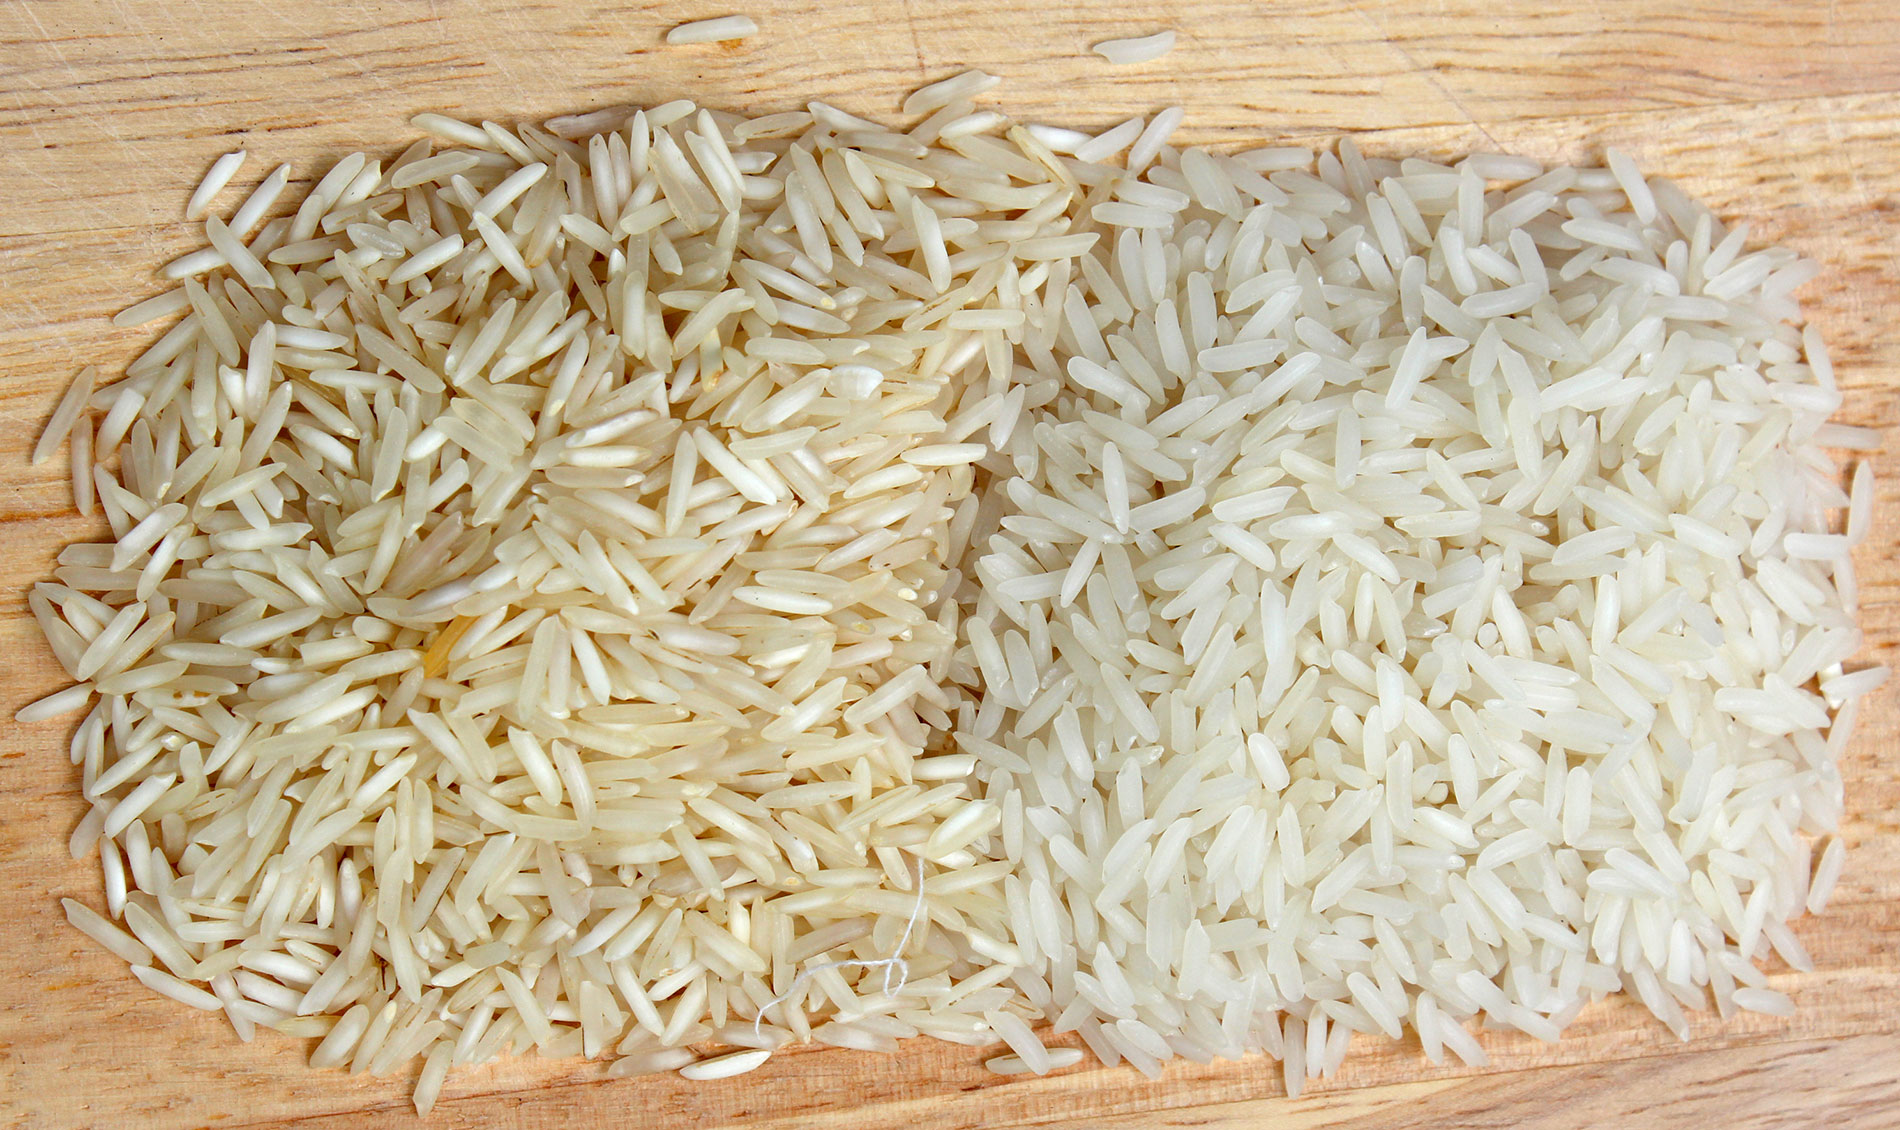 Indica White Rices